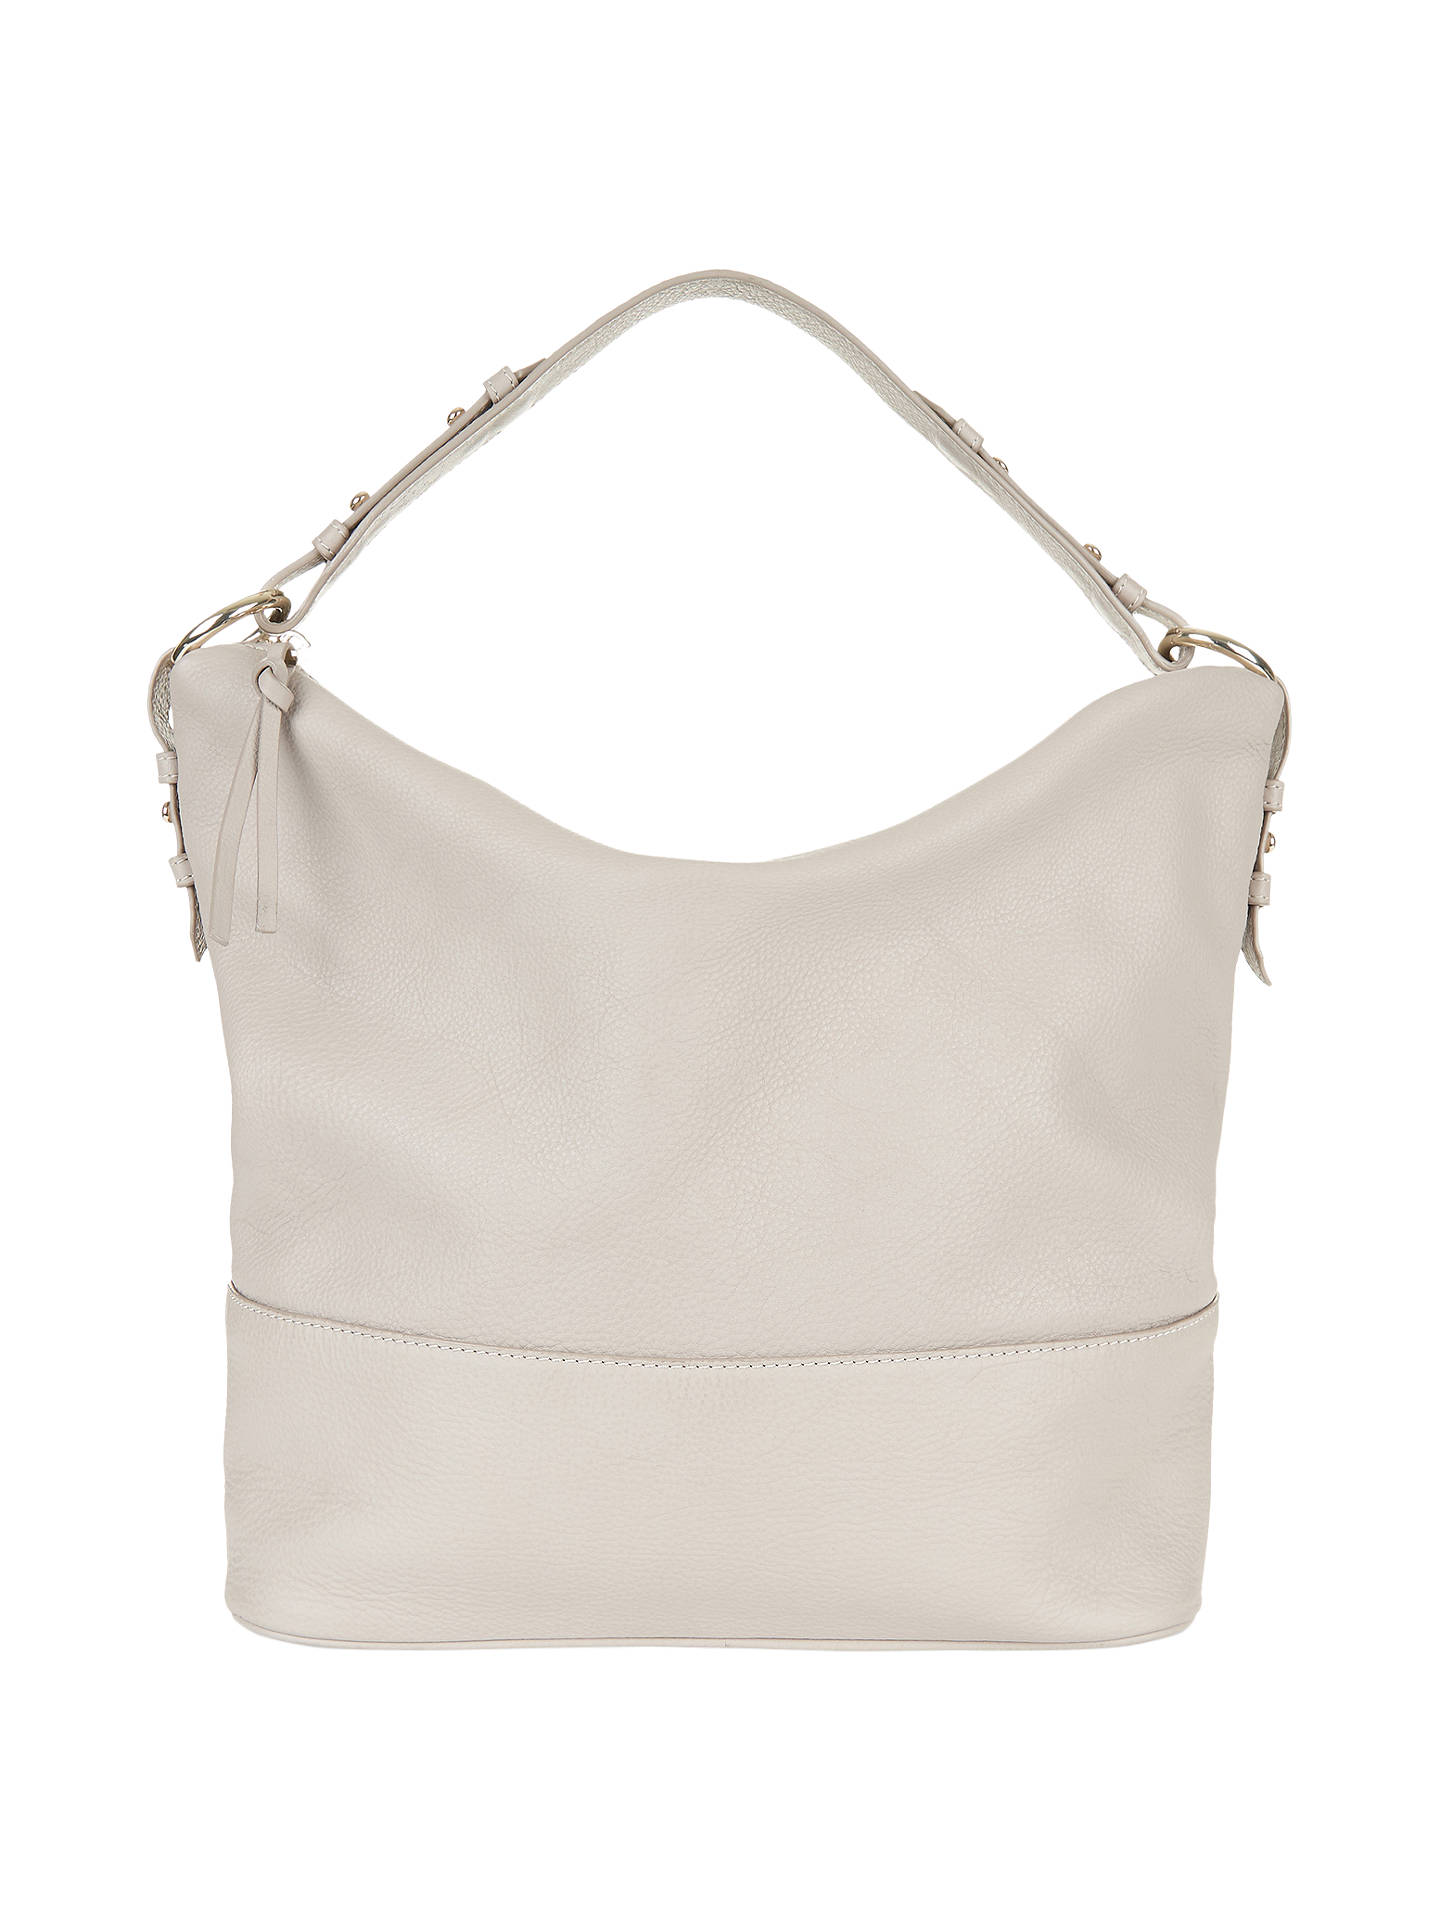 72233e9655 Buy Hobbs Hayley Leather Hobo Bag